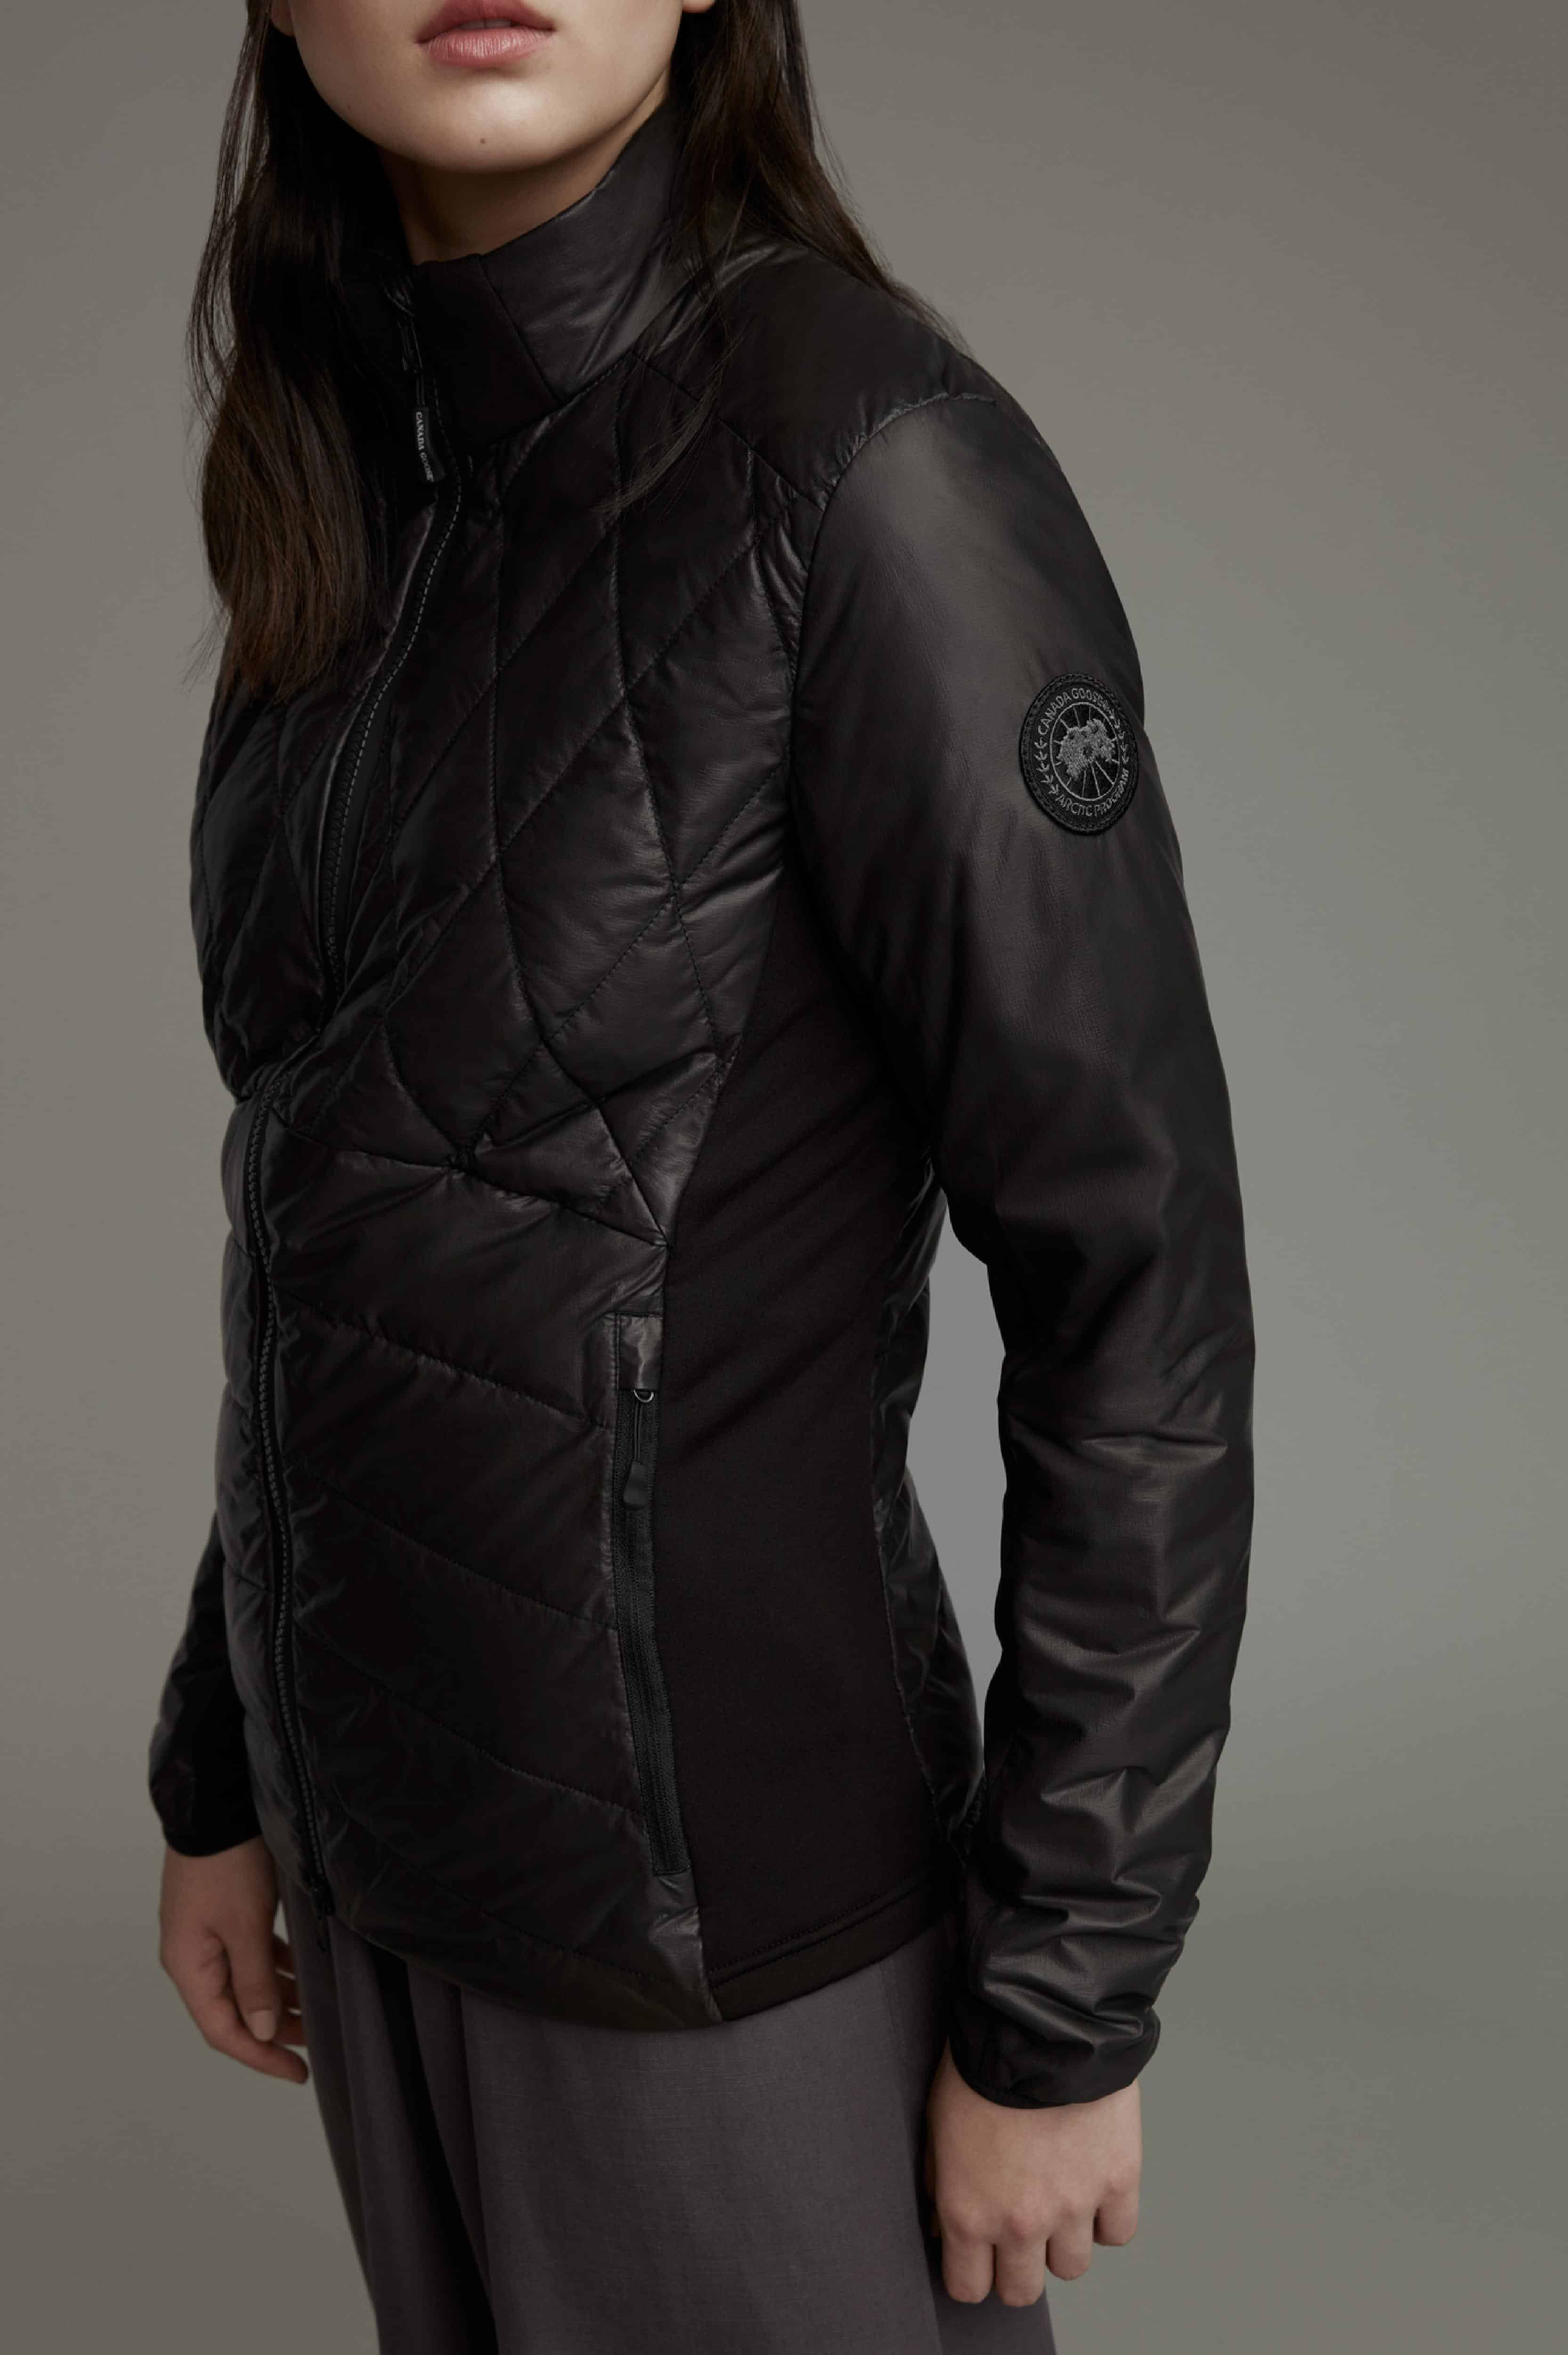 88380bae3 Canada Goose joins forces with GORE-TEX for new jackets we know you ...